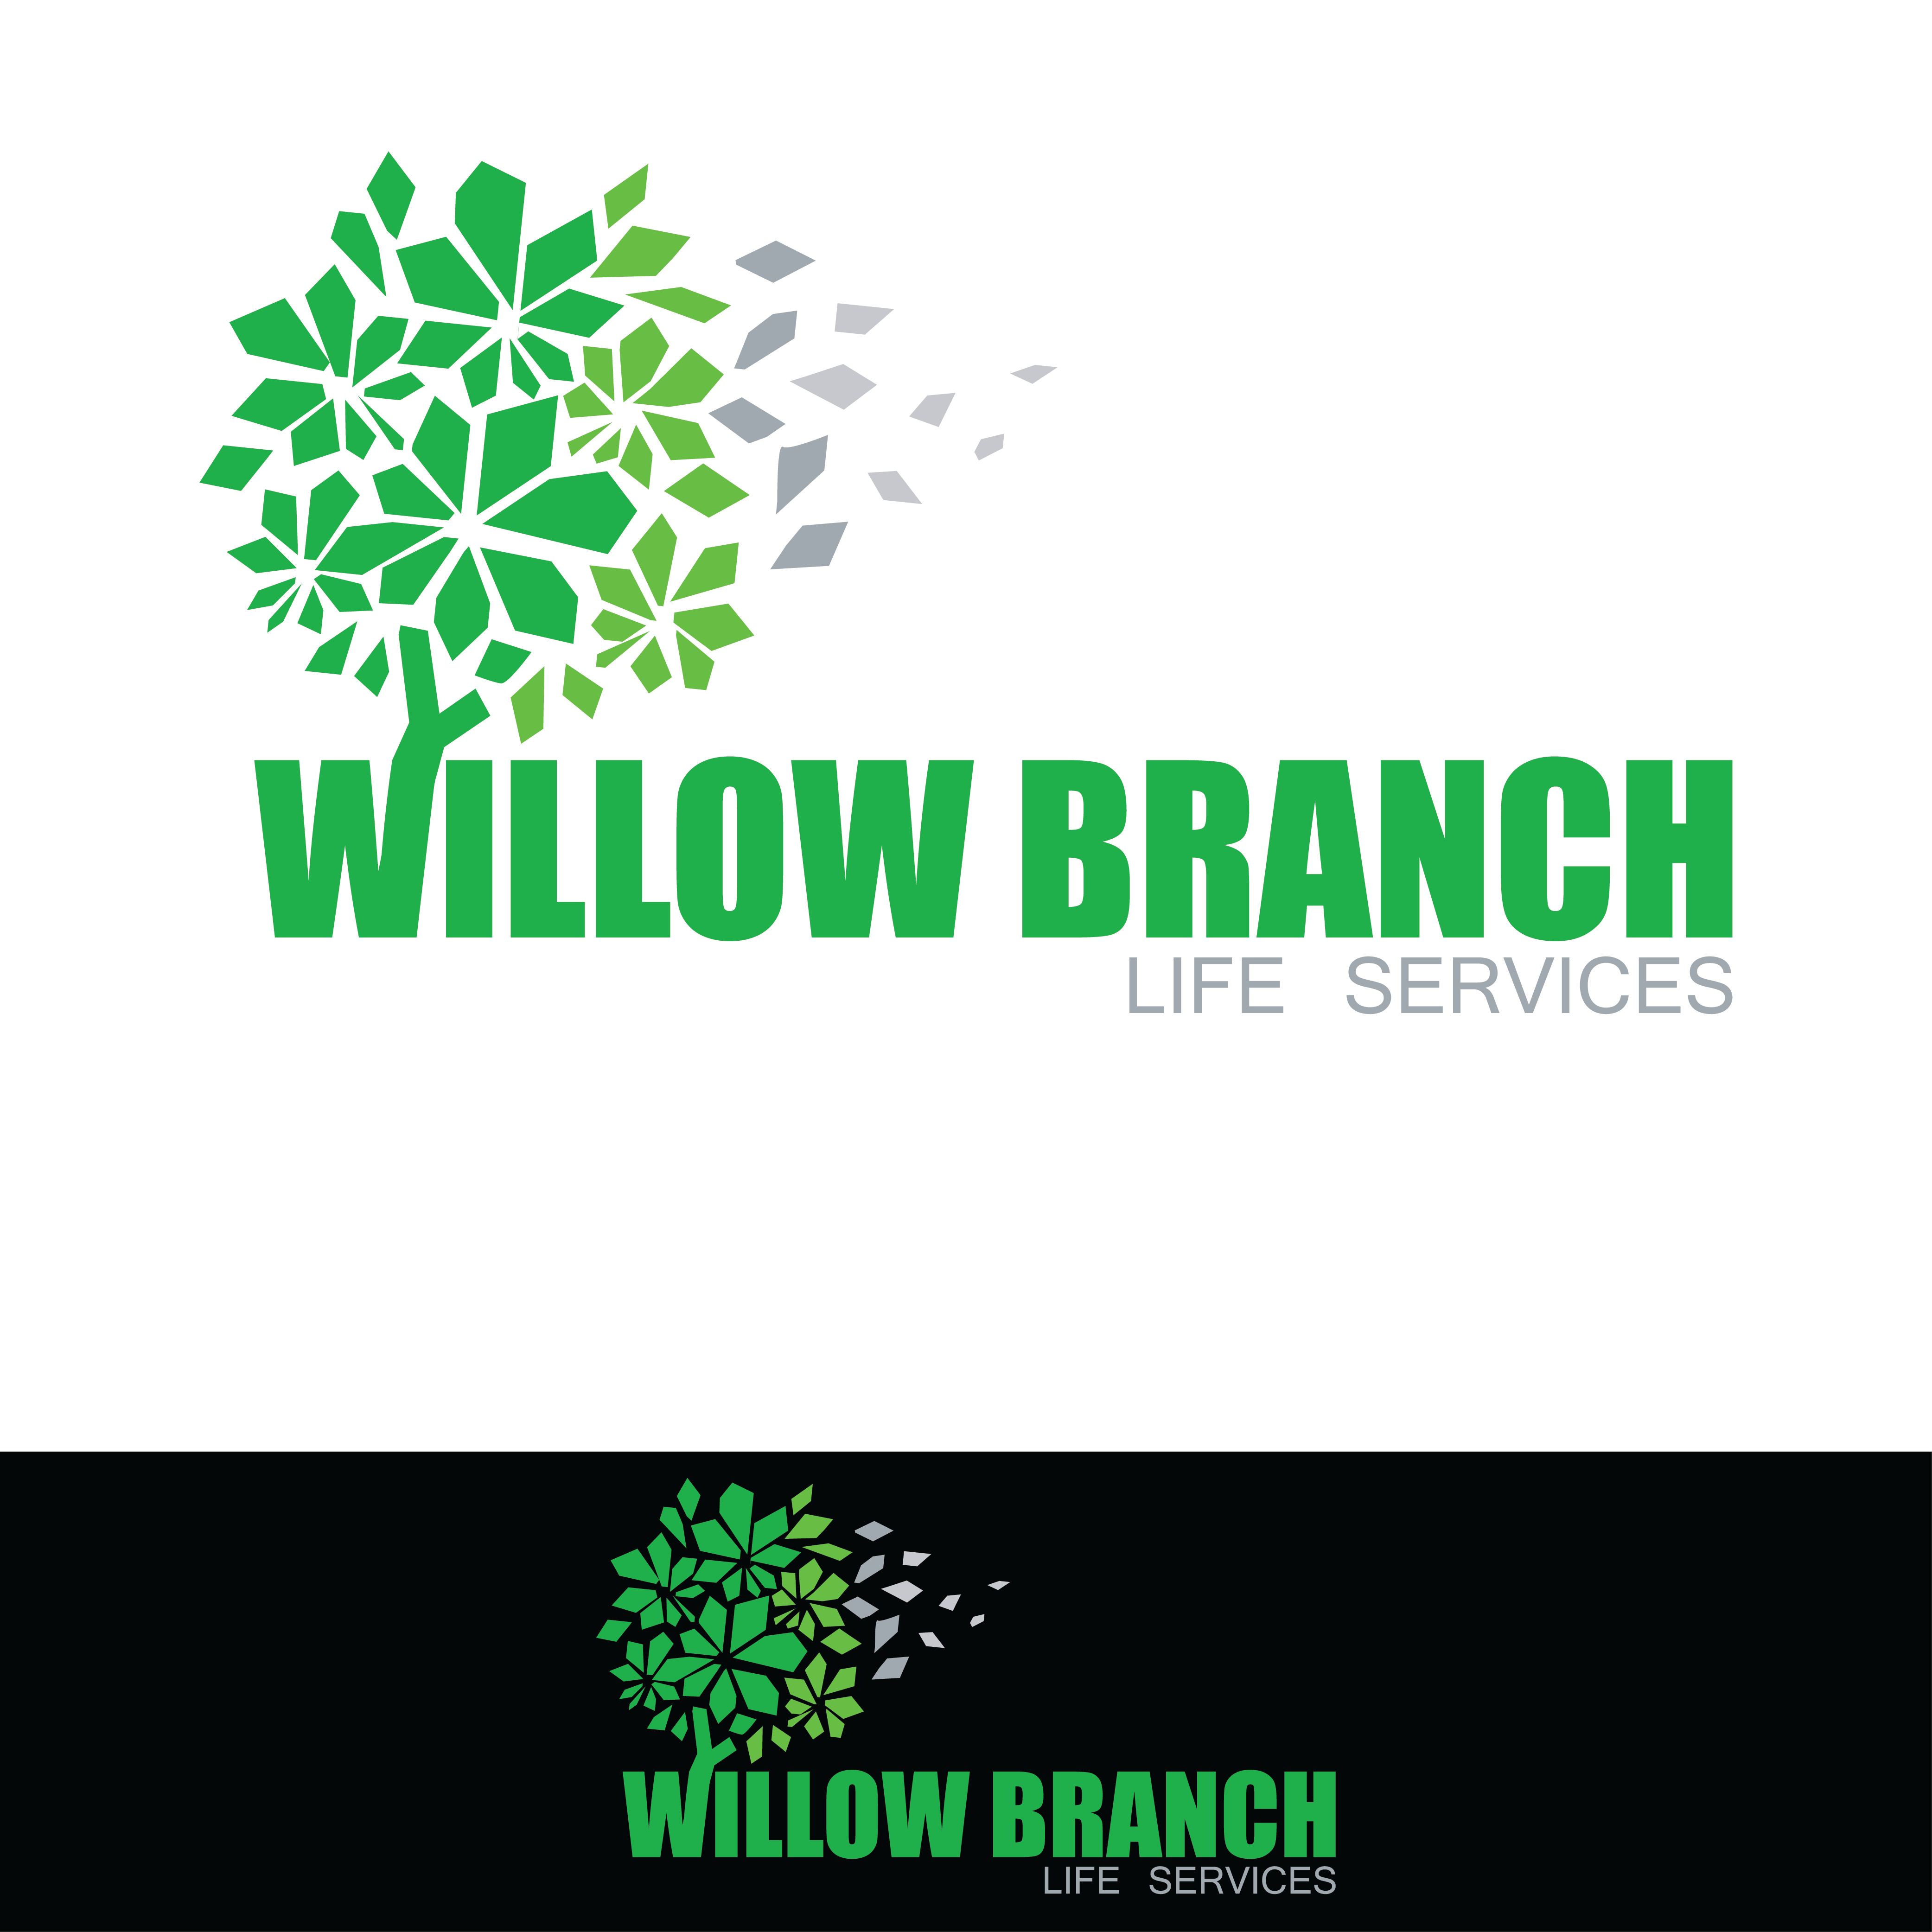 Logo Design by pojas12 - Entry No. 426 in the Logo Design Contest Artistic Logo Design for Willow Branch Life Service.